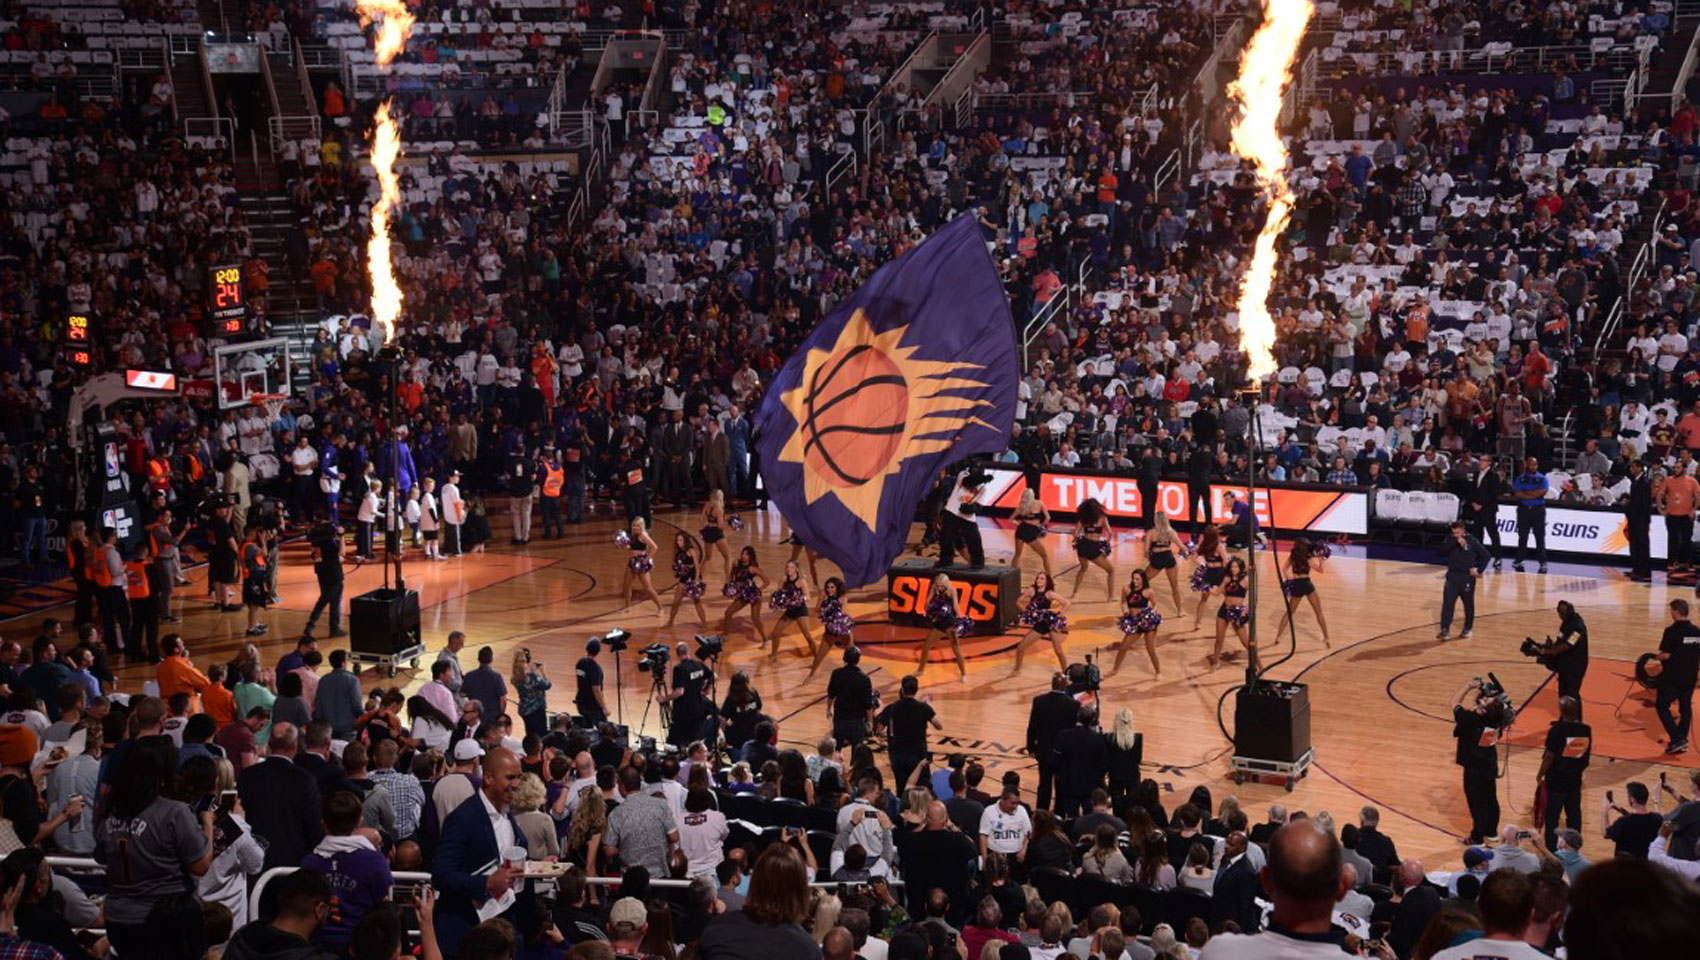 Phoenix Suns home game during halftime show